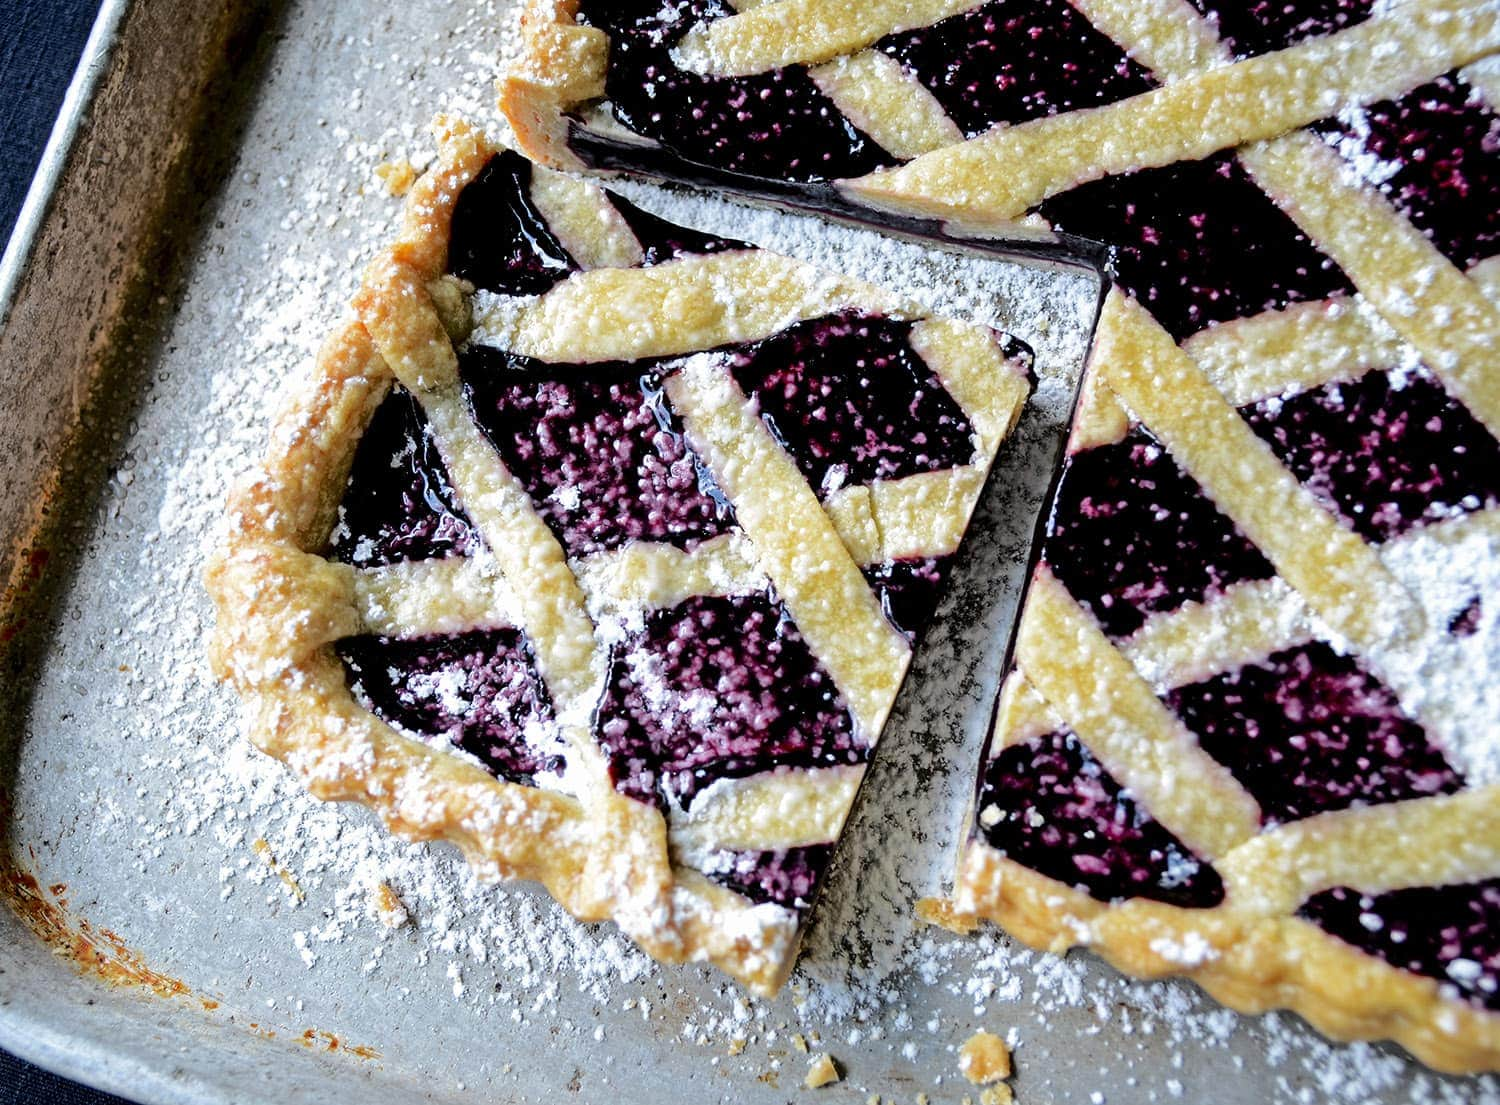 Inspired by classic linzer torte, this Mulberry Tart evokes the simplicity of days gone by. It's fruity, sweet, buttery and heaven with vanilla ice cream. | vintagekitty.com